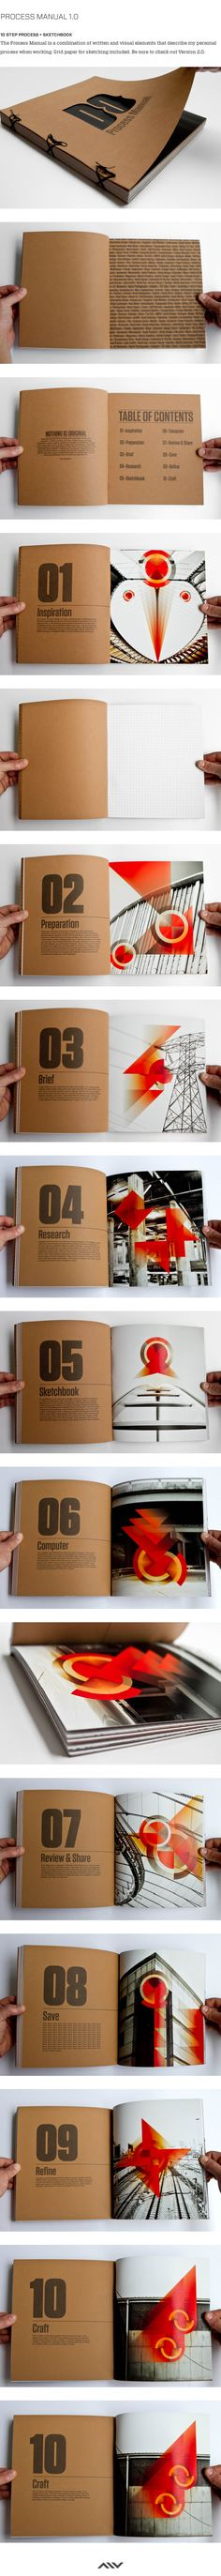 Process Manual Volume 1.0 on Behance